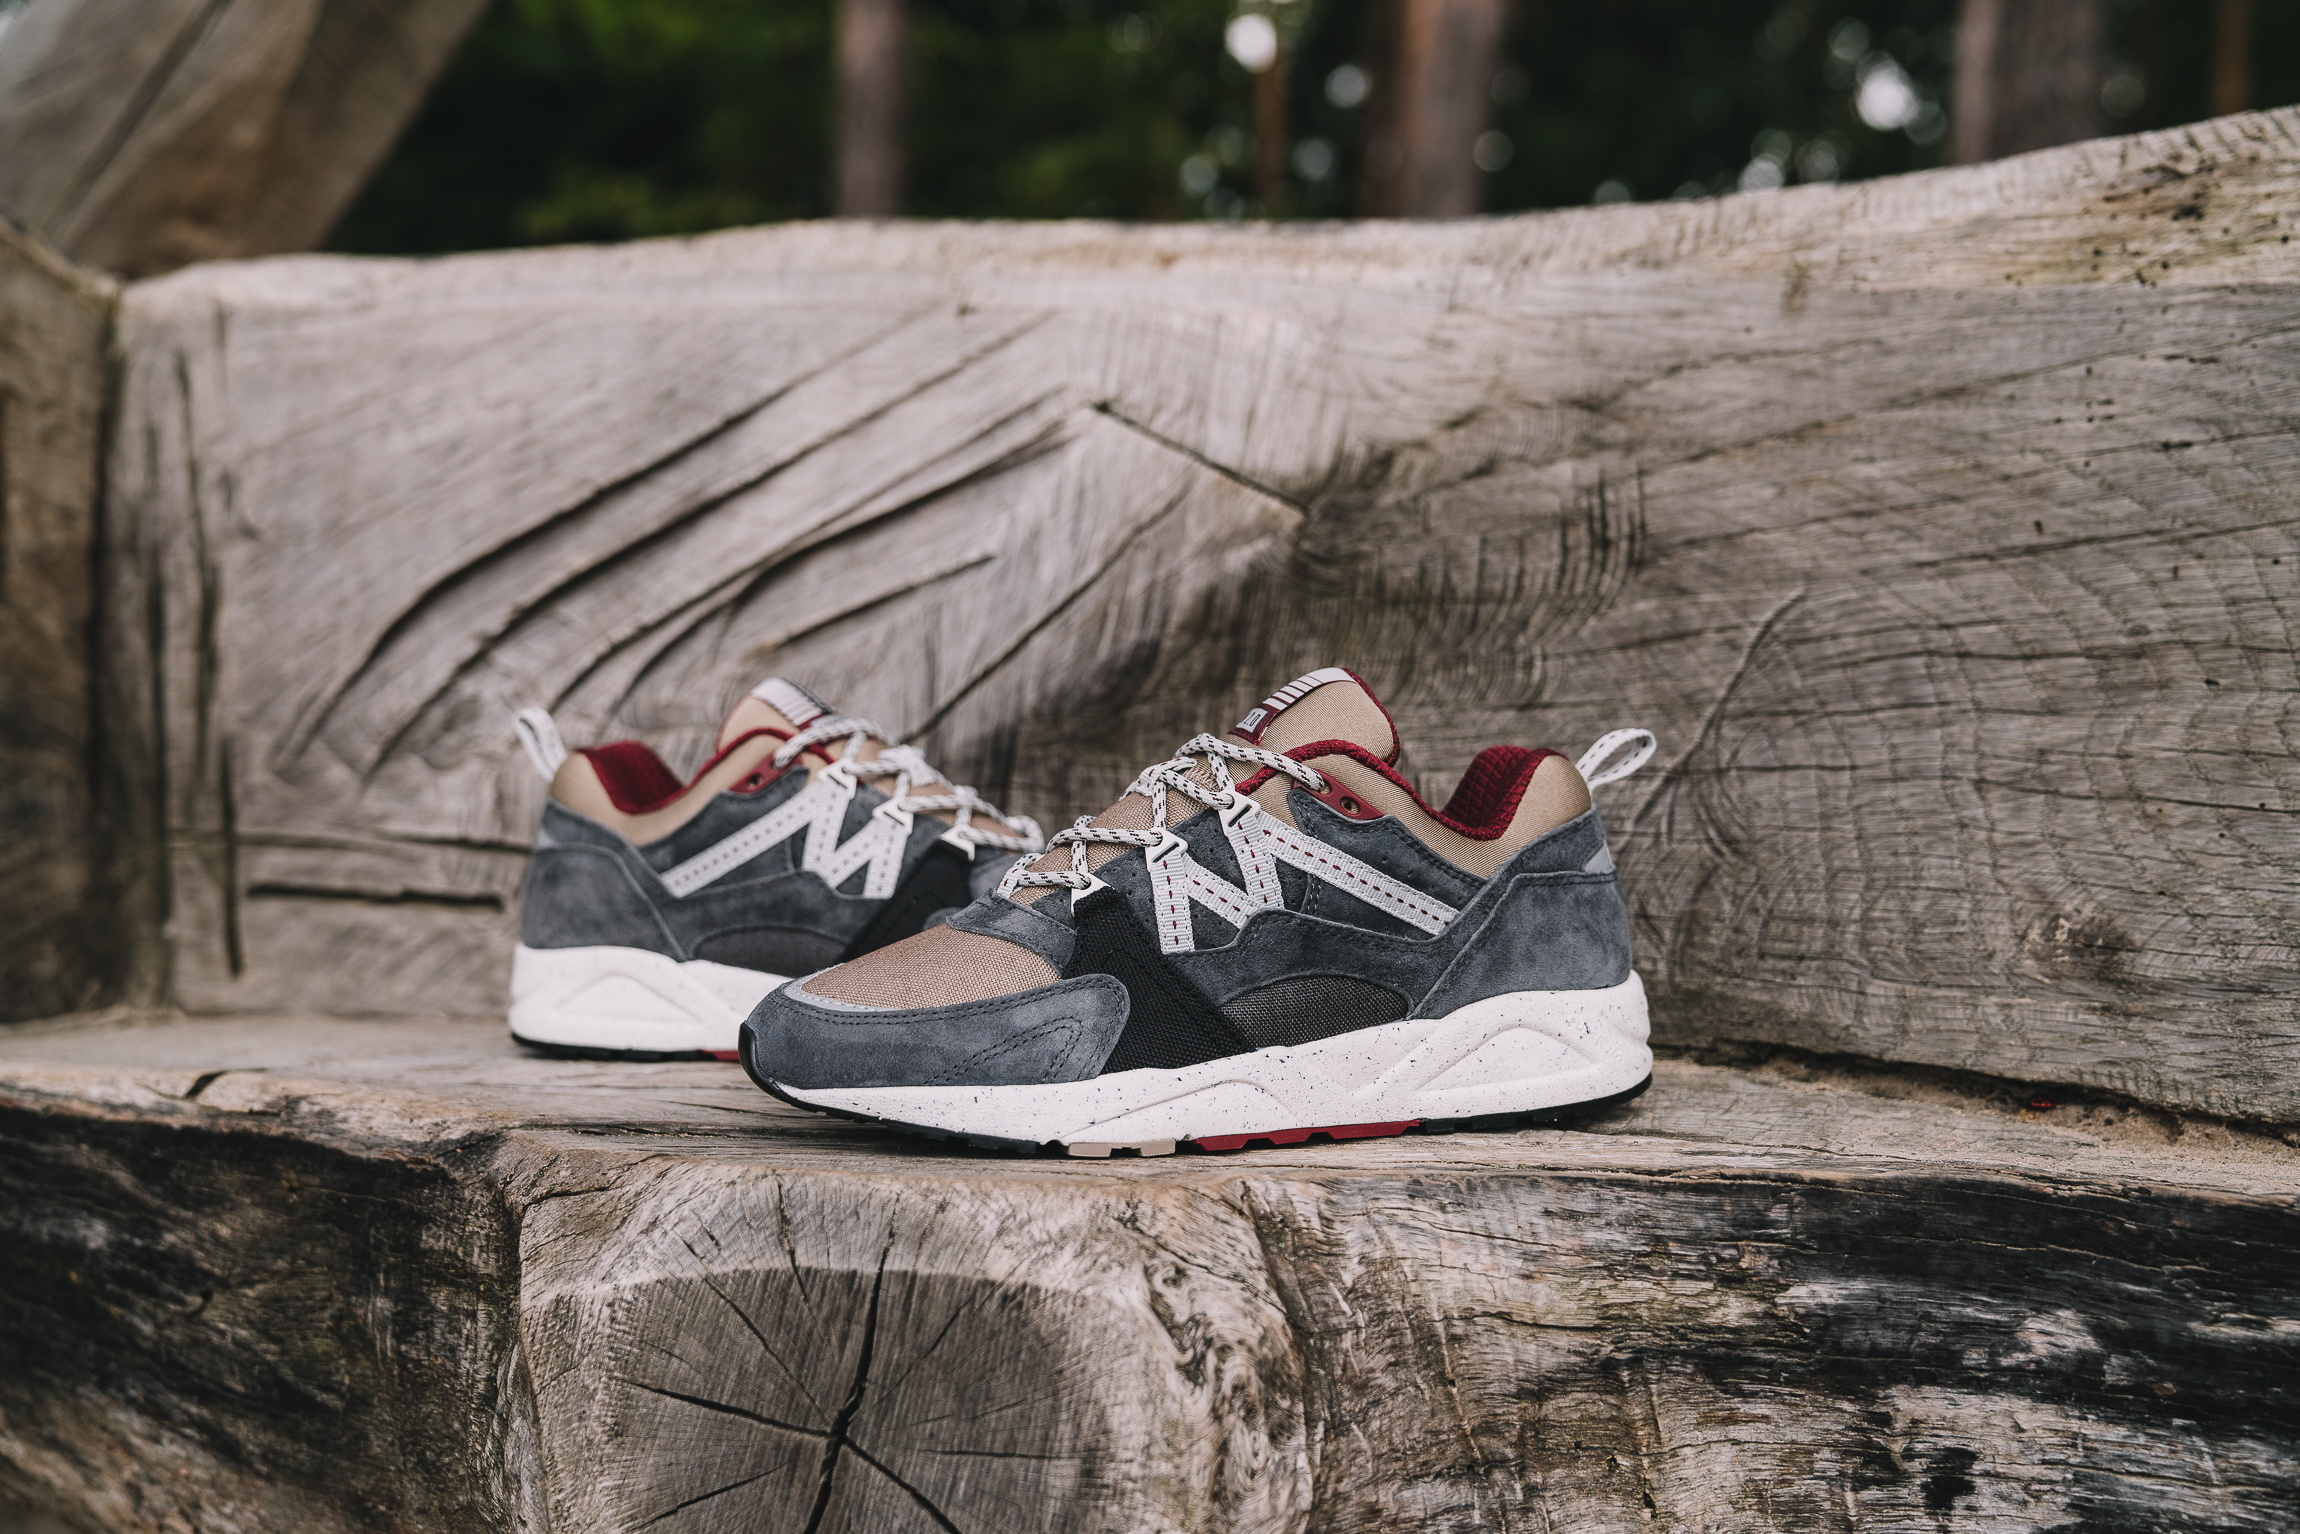 Runnerwally_for_Karhu_outdoor_pack-40